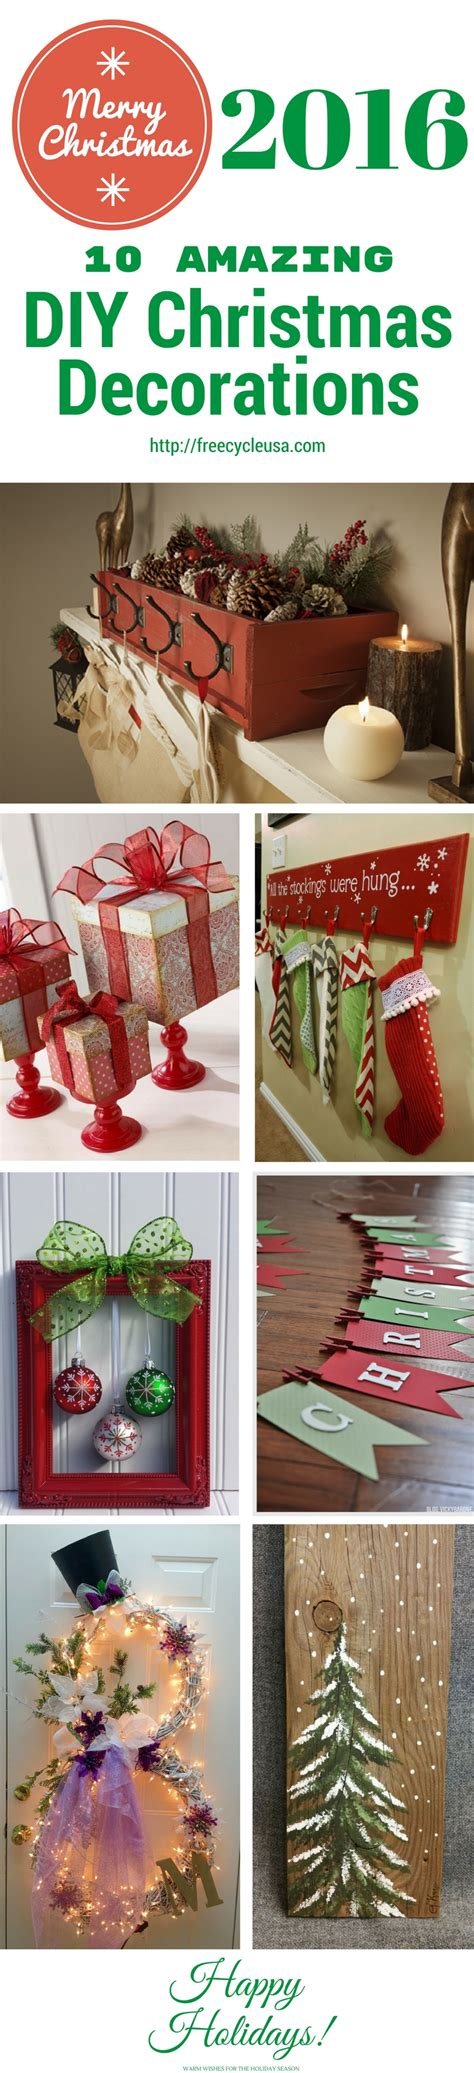 diy home christmas decorations 10 amazing diy home christmas decorations freecycle